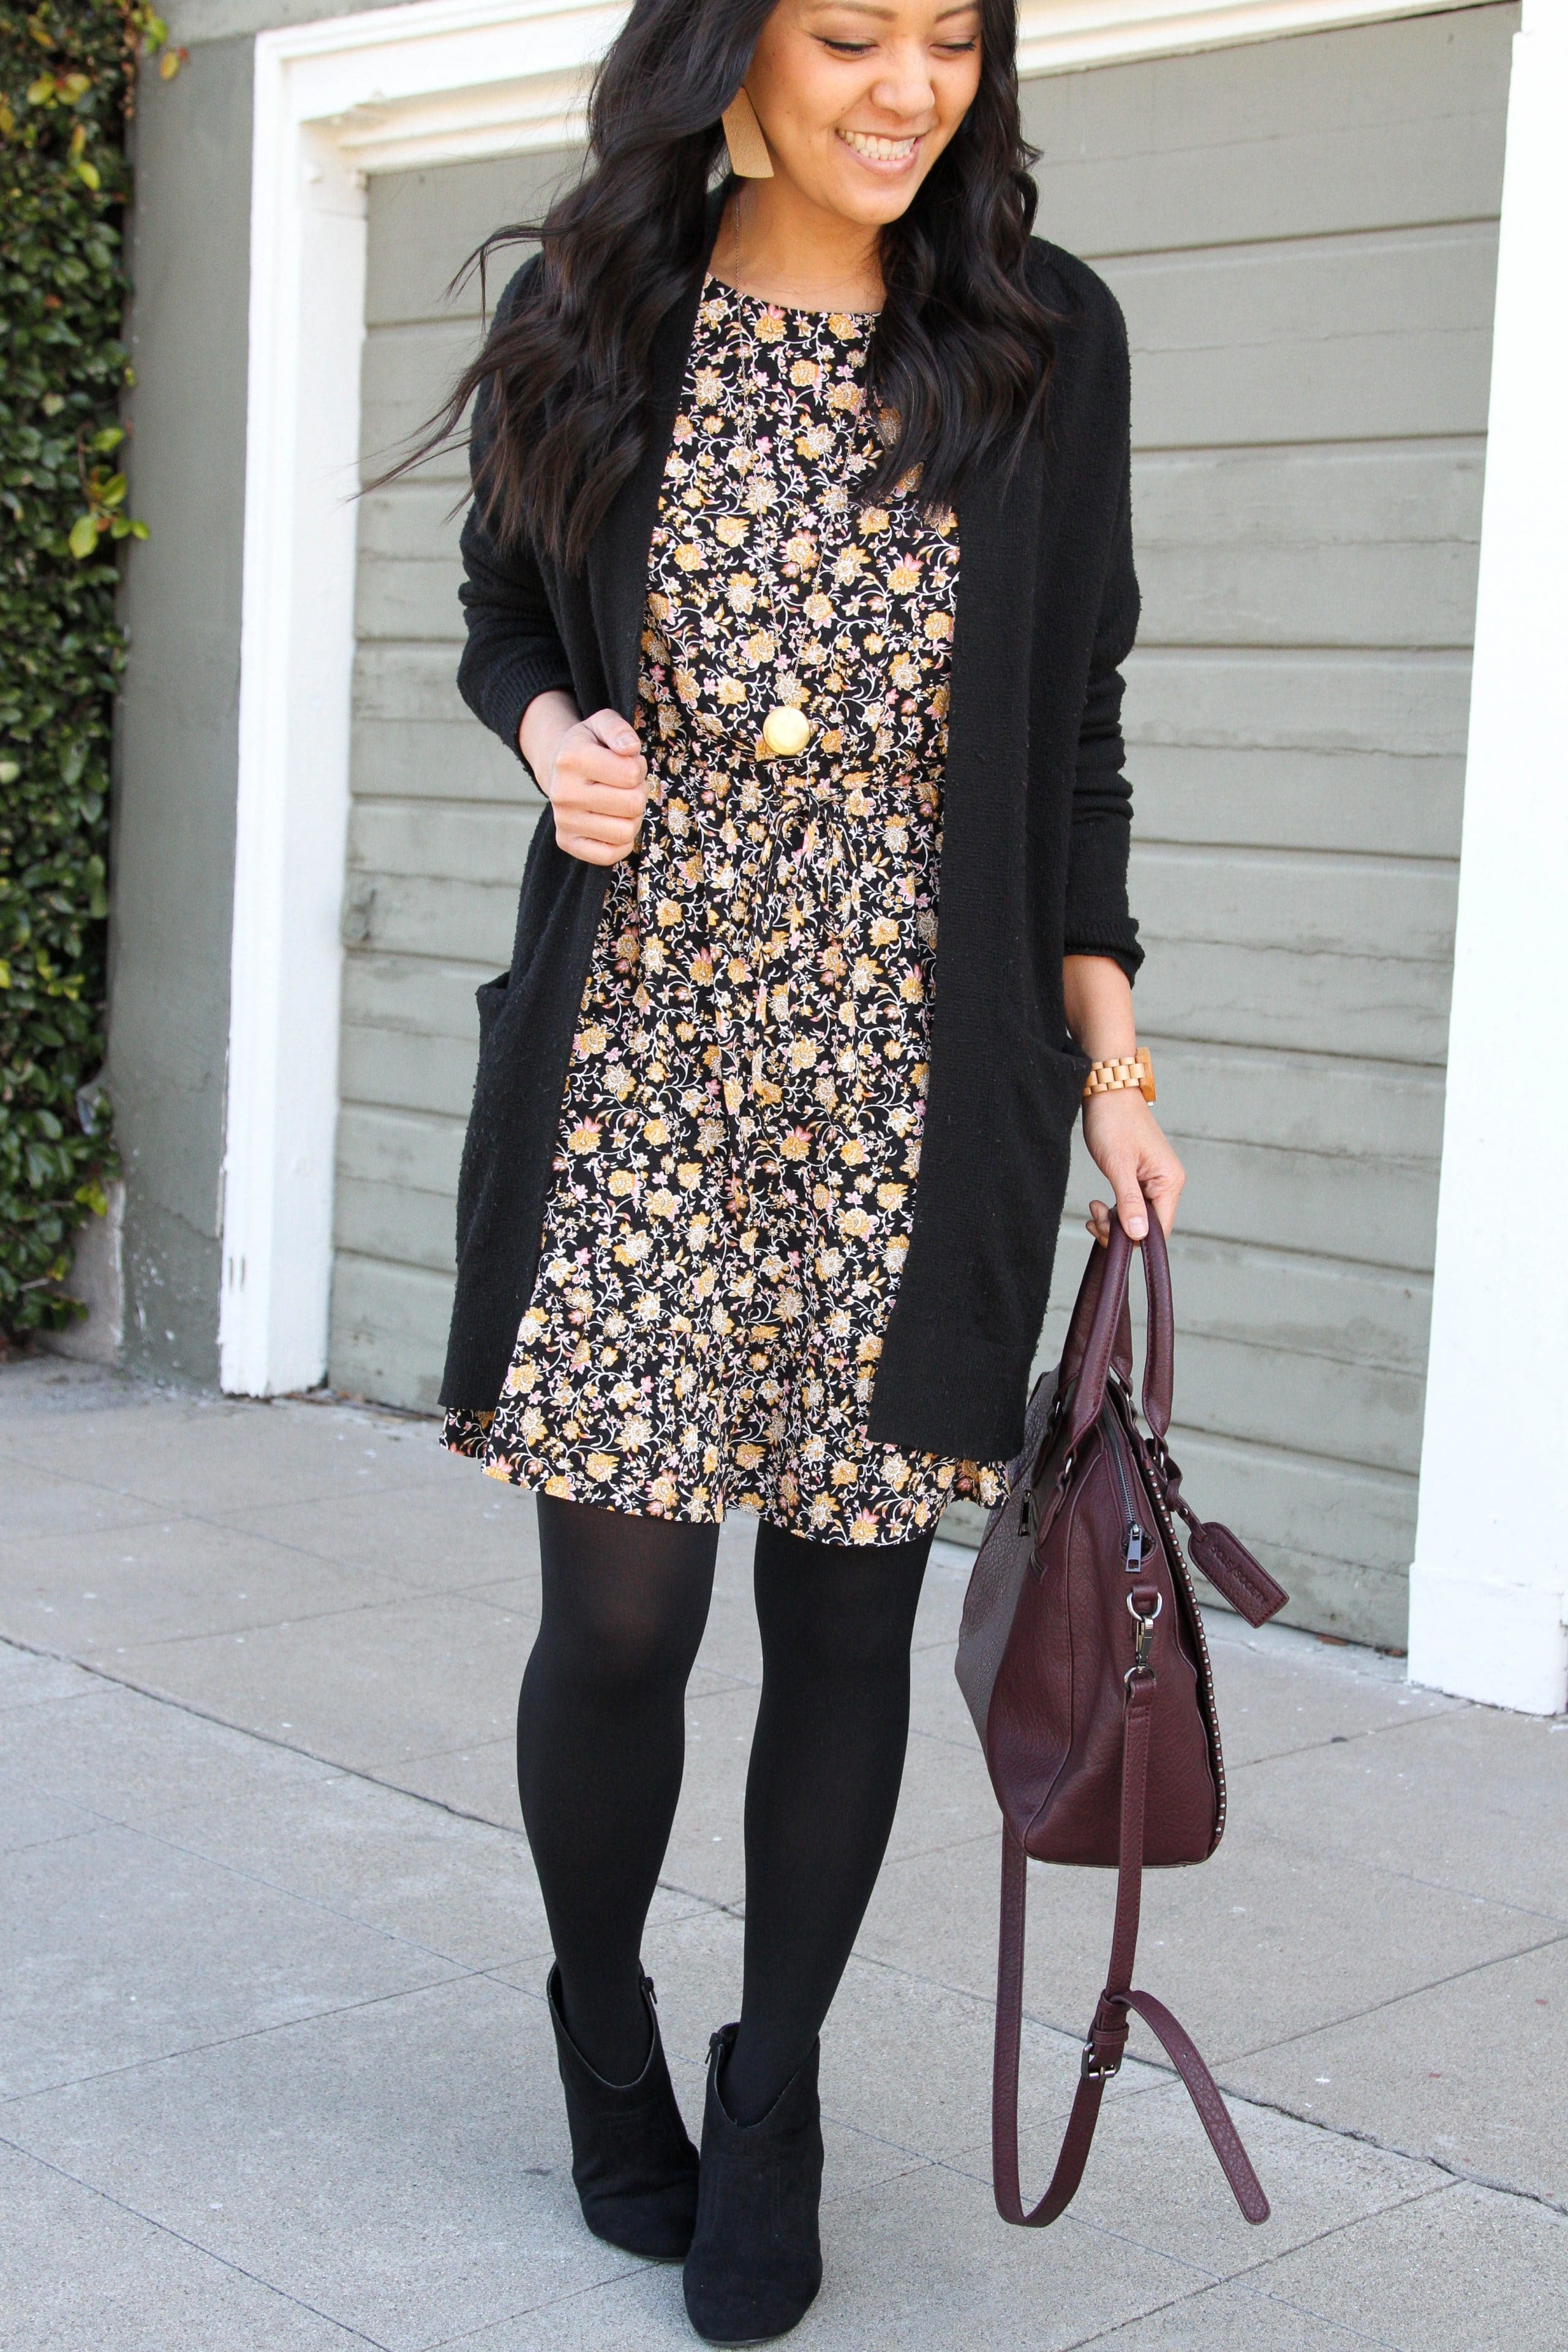 Maroon Bag + Black Tights + Booties + Black Cardigan + Black Floral Dress